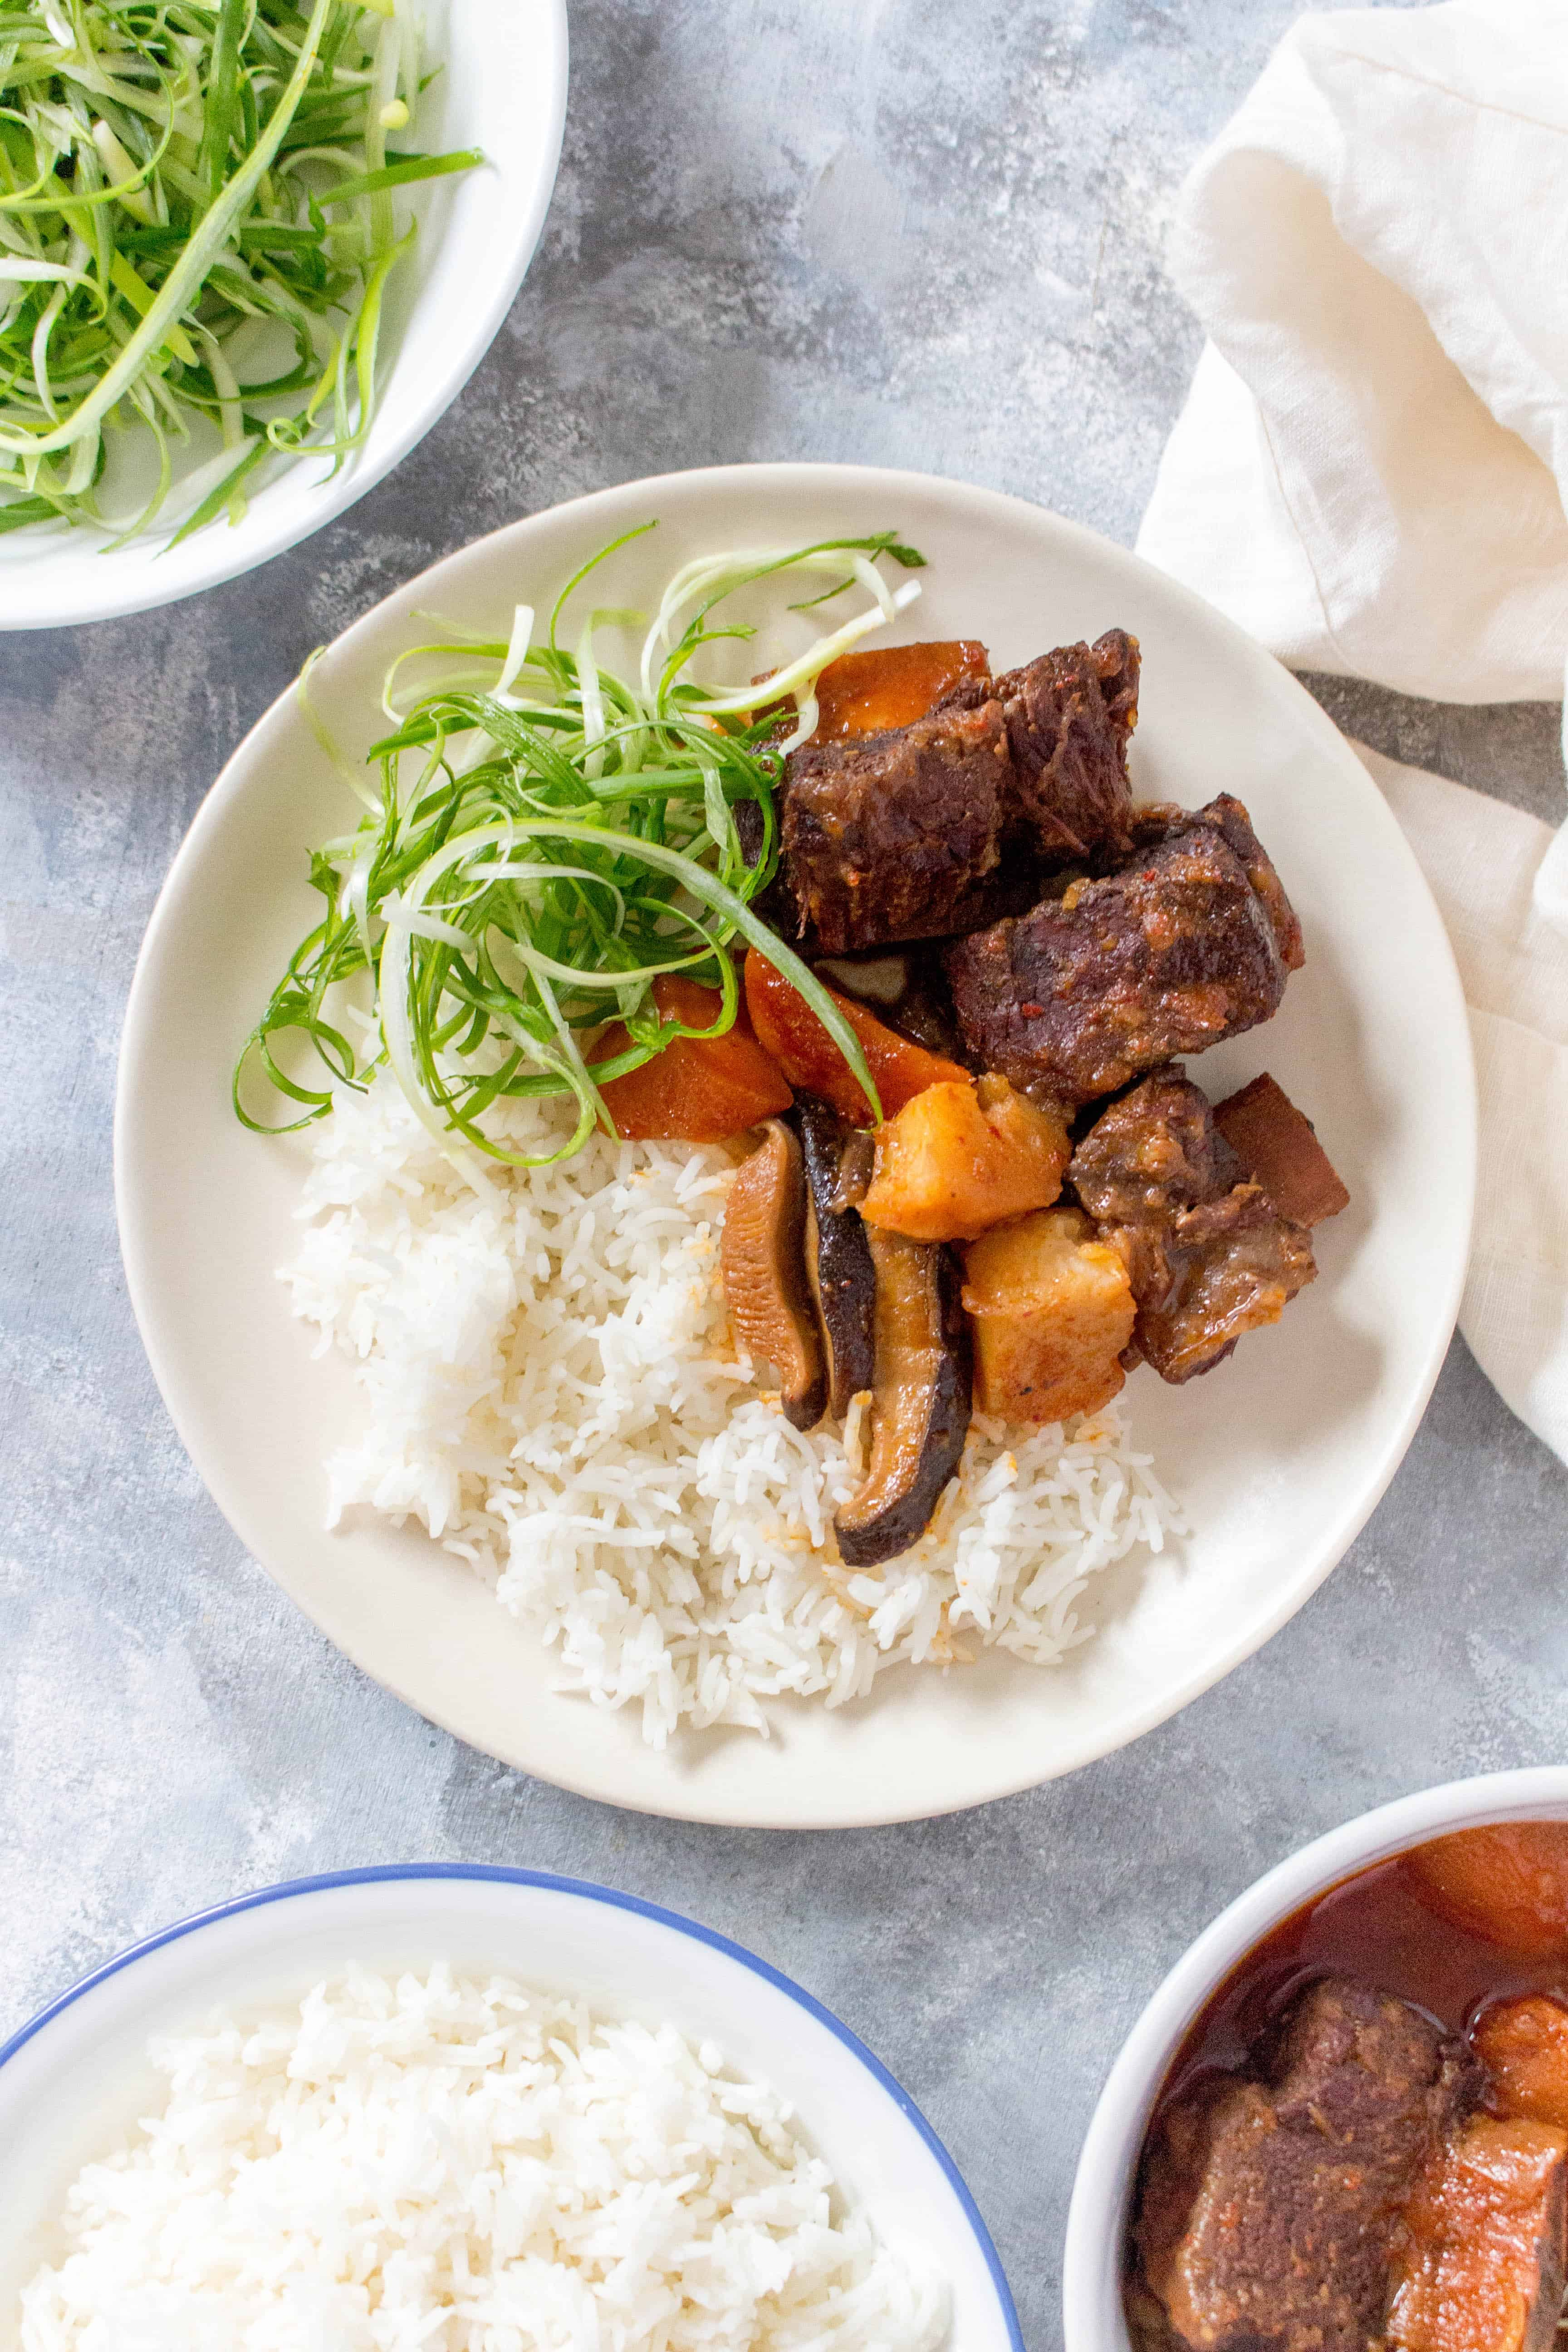 Korean Instant Pot Beef Short Ribs | These spicy sweet but savoury Korean Instant Pot Beef Short Ribs are going to knock your socks off. It's such a cozy meal that you're going to want to make this again and again all winter.